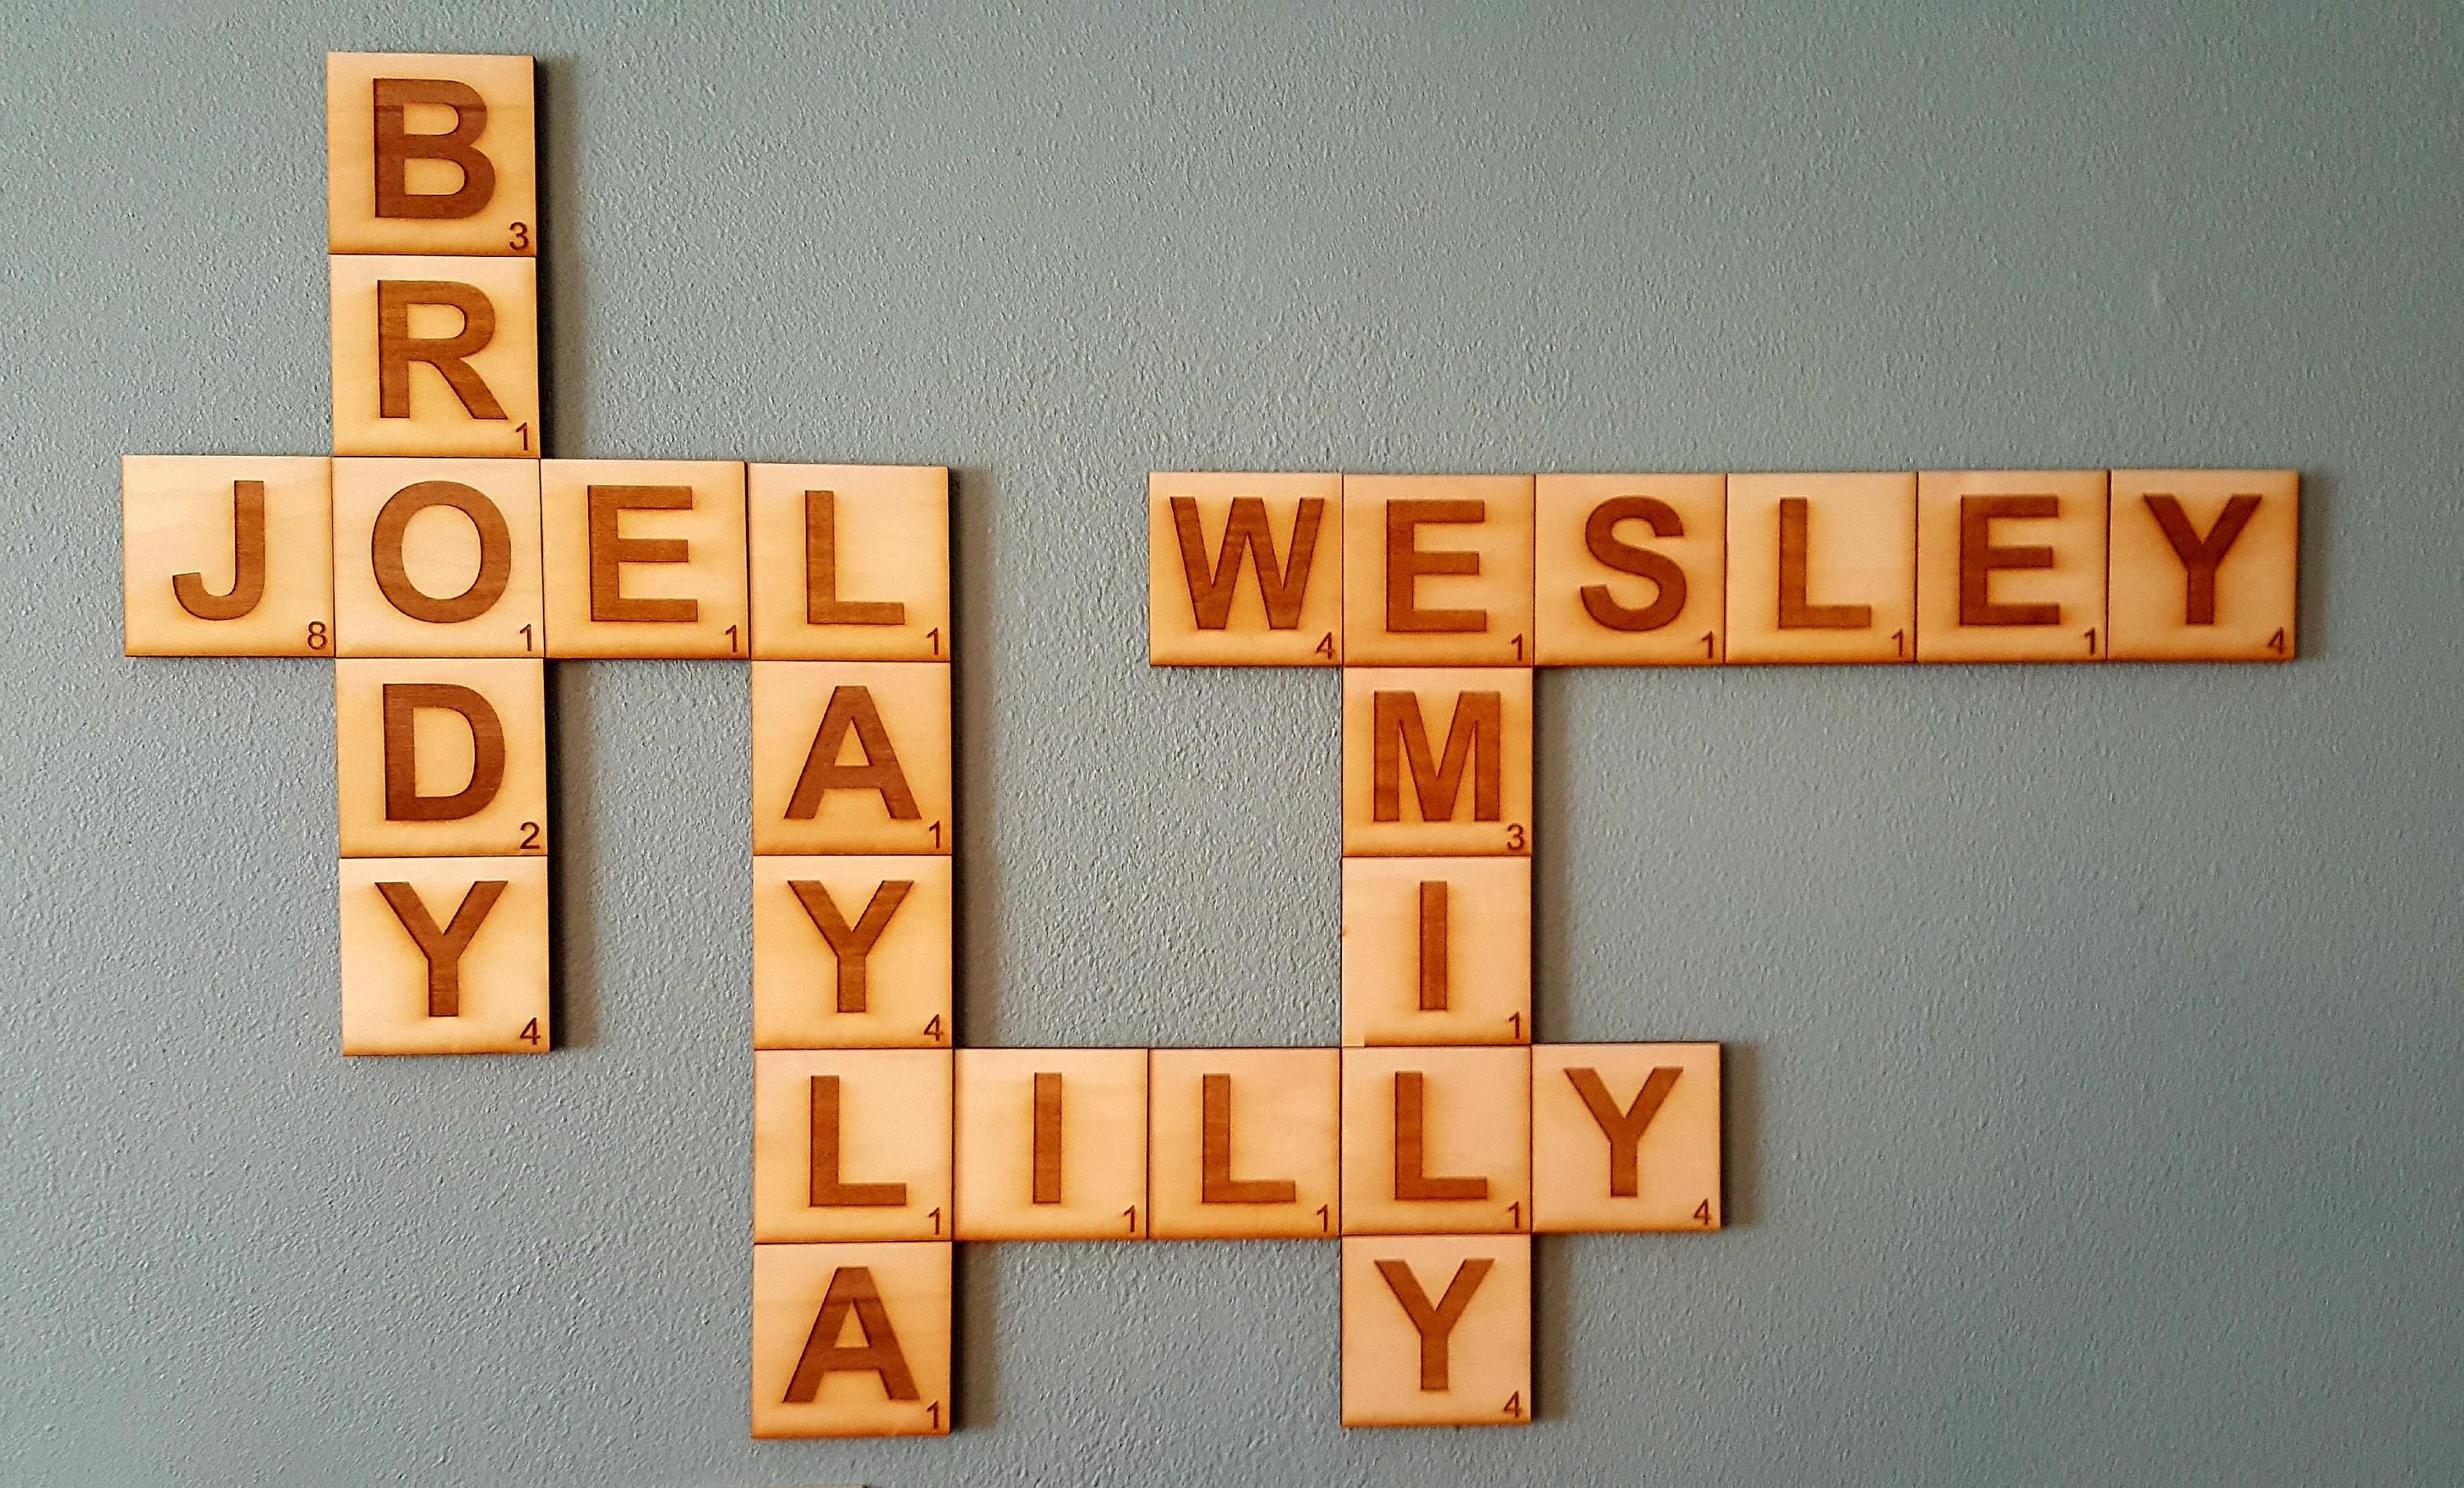 Scrabble Wall Tiles, Scrabble Letters, Scrabble Tiles, Scrabble Pertaining To Scrabble Letters Wall Art (Image 14 of 20)